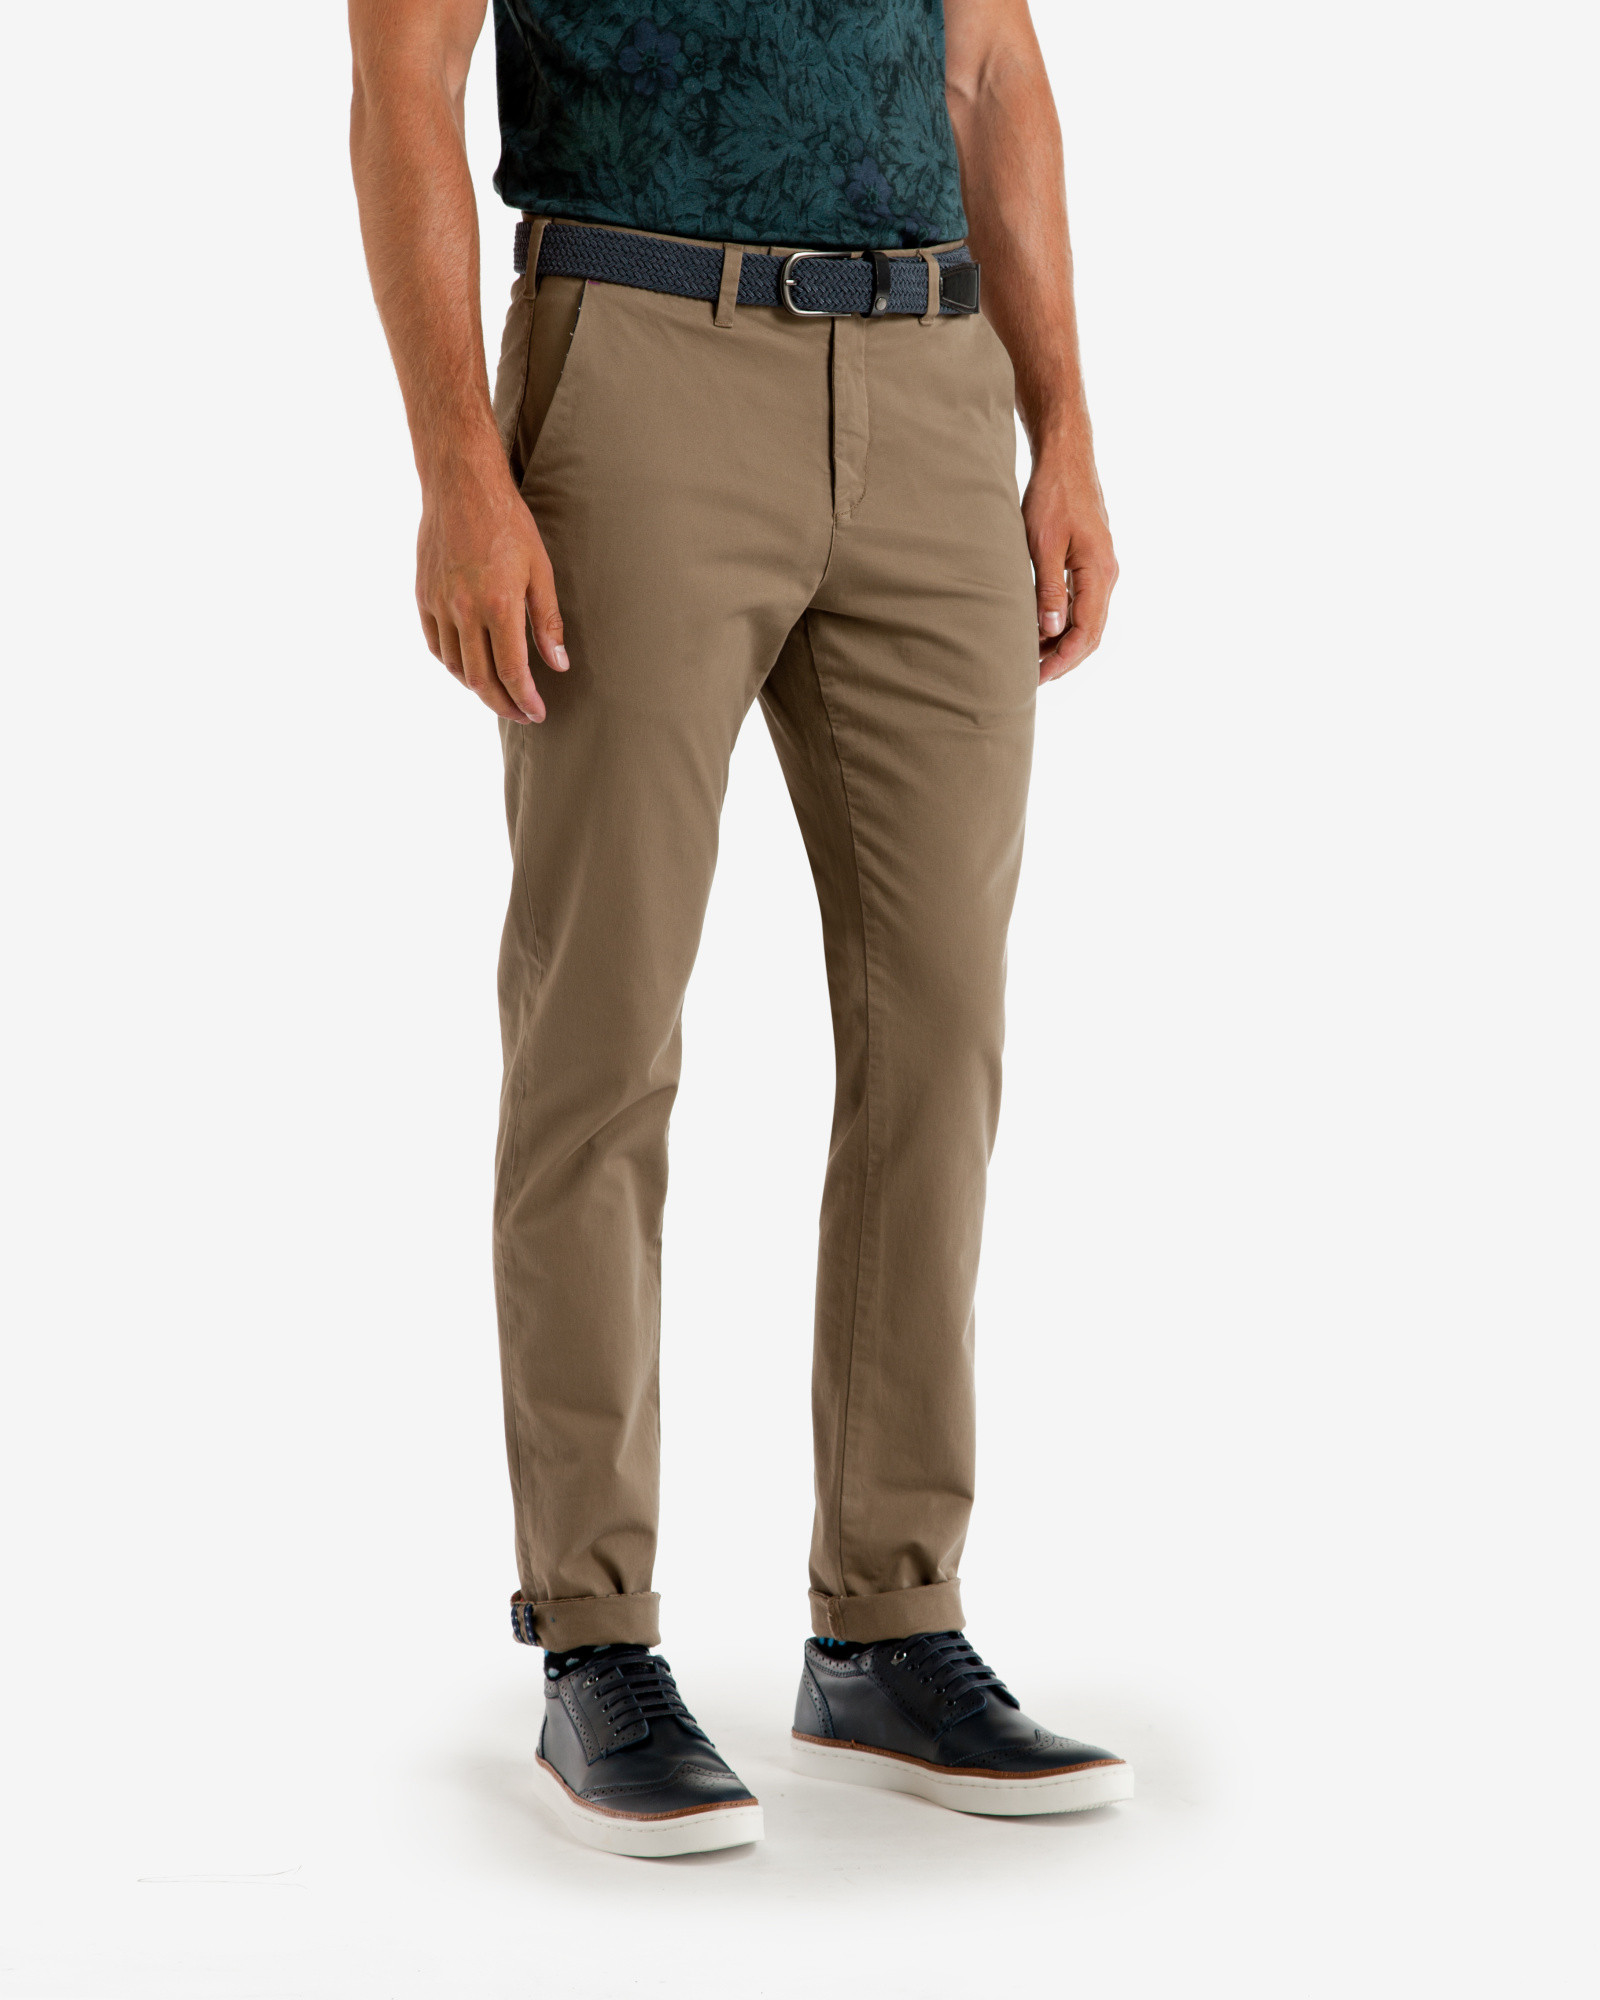 Mens Beige Pants at Macy's come in all styles and sizes. Shop Men's Pants: Dress Pants, Chinos, Khakis, Beige pants and more at Macy's! Macy's Presents: The Edit - A curated mix of fashion and inspiration Check It Out.